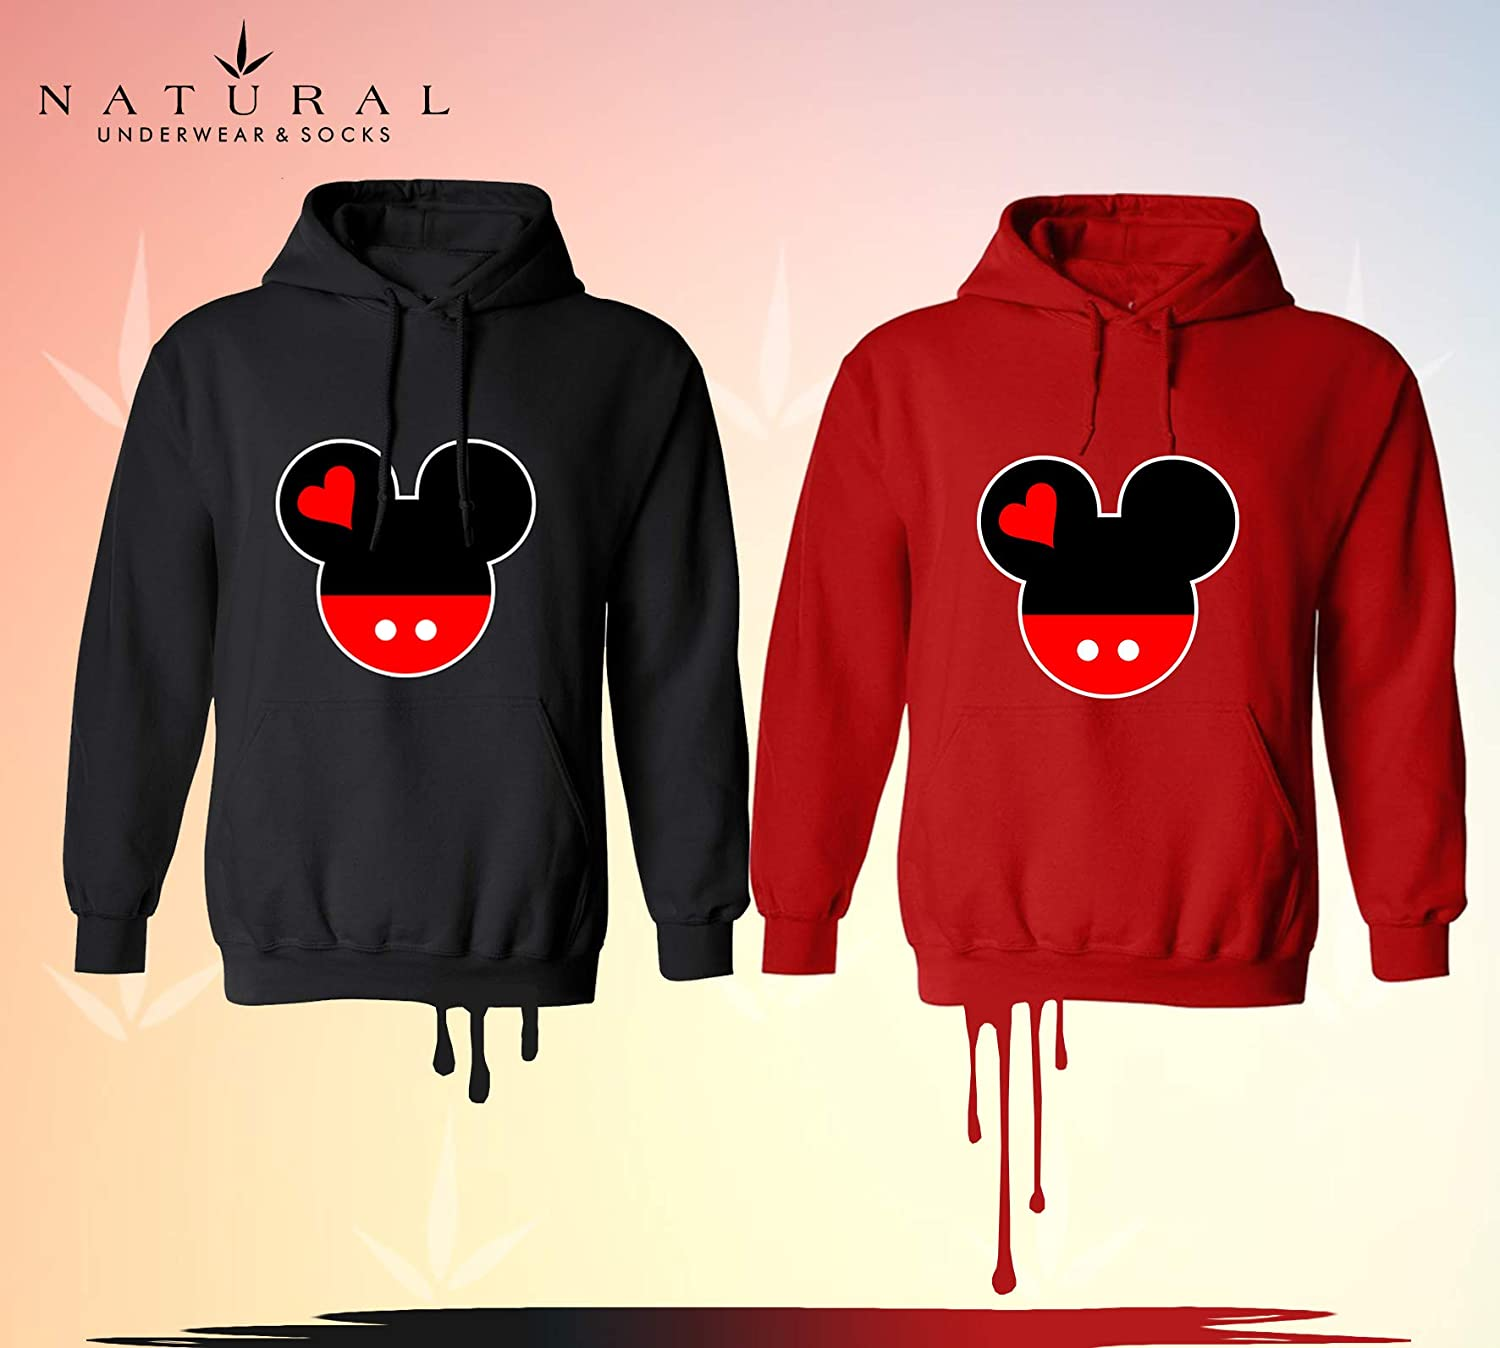 ebac2b10e082 Amazon.com: Natural Underwear Disney Mickey Mouse and Minnie Mouse Kids  Hoodies Girls Boys: Clothing